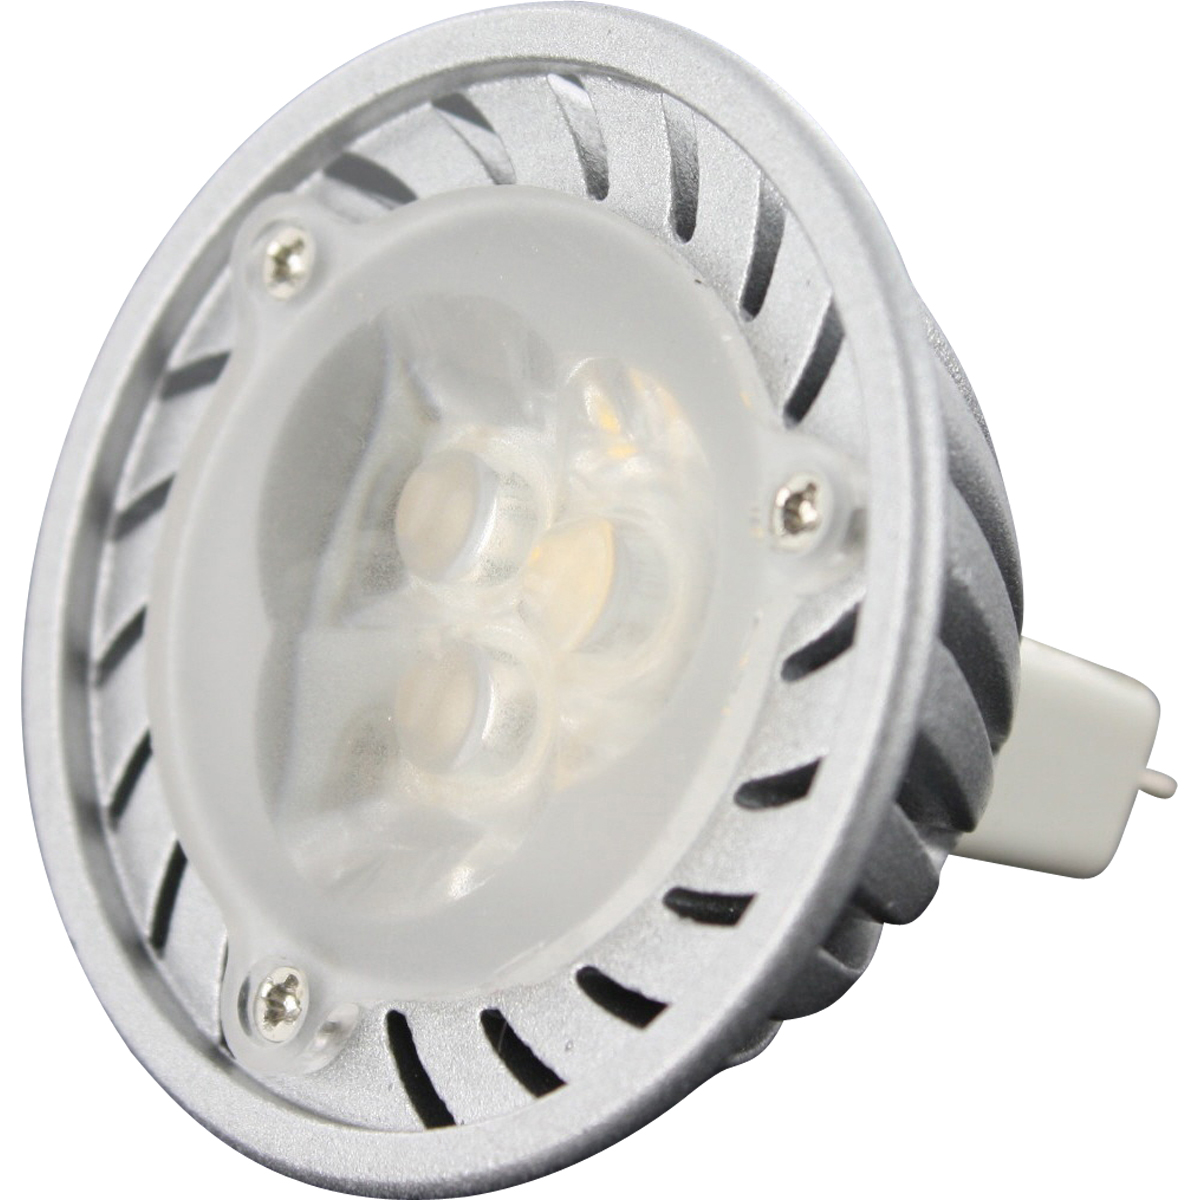 LED Spotjes MR11